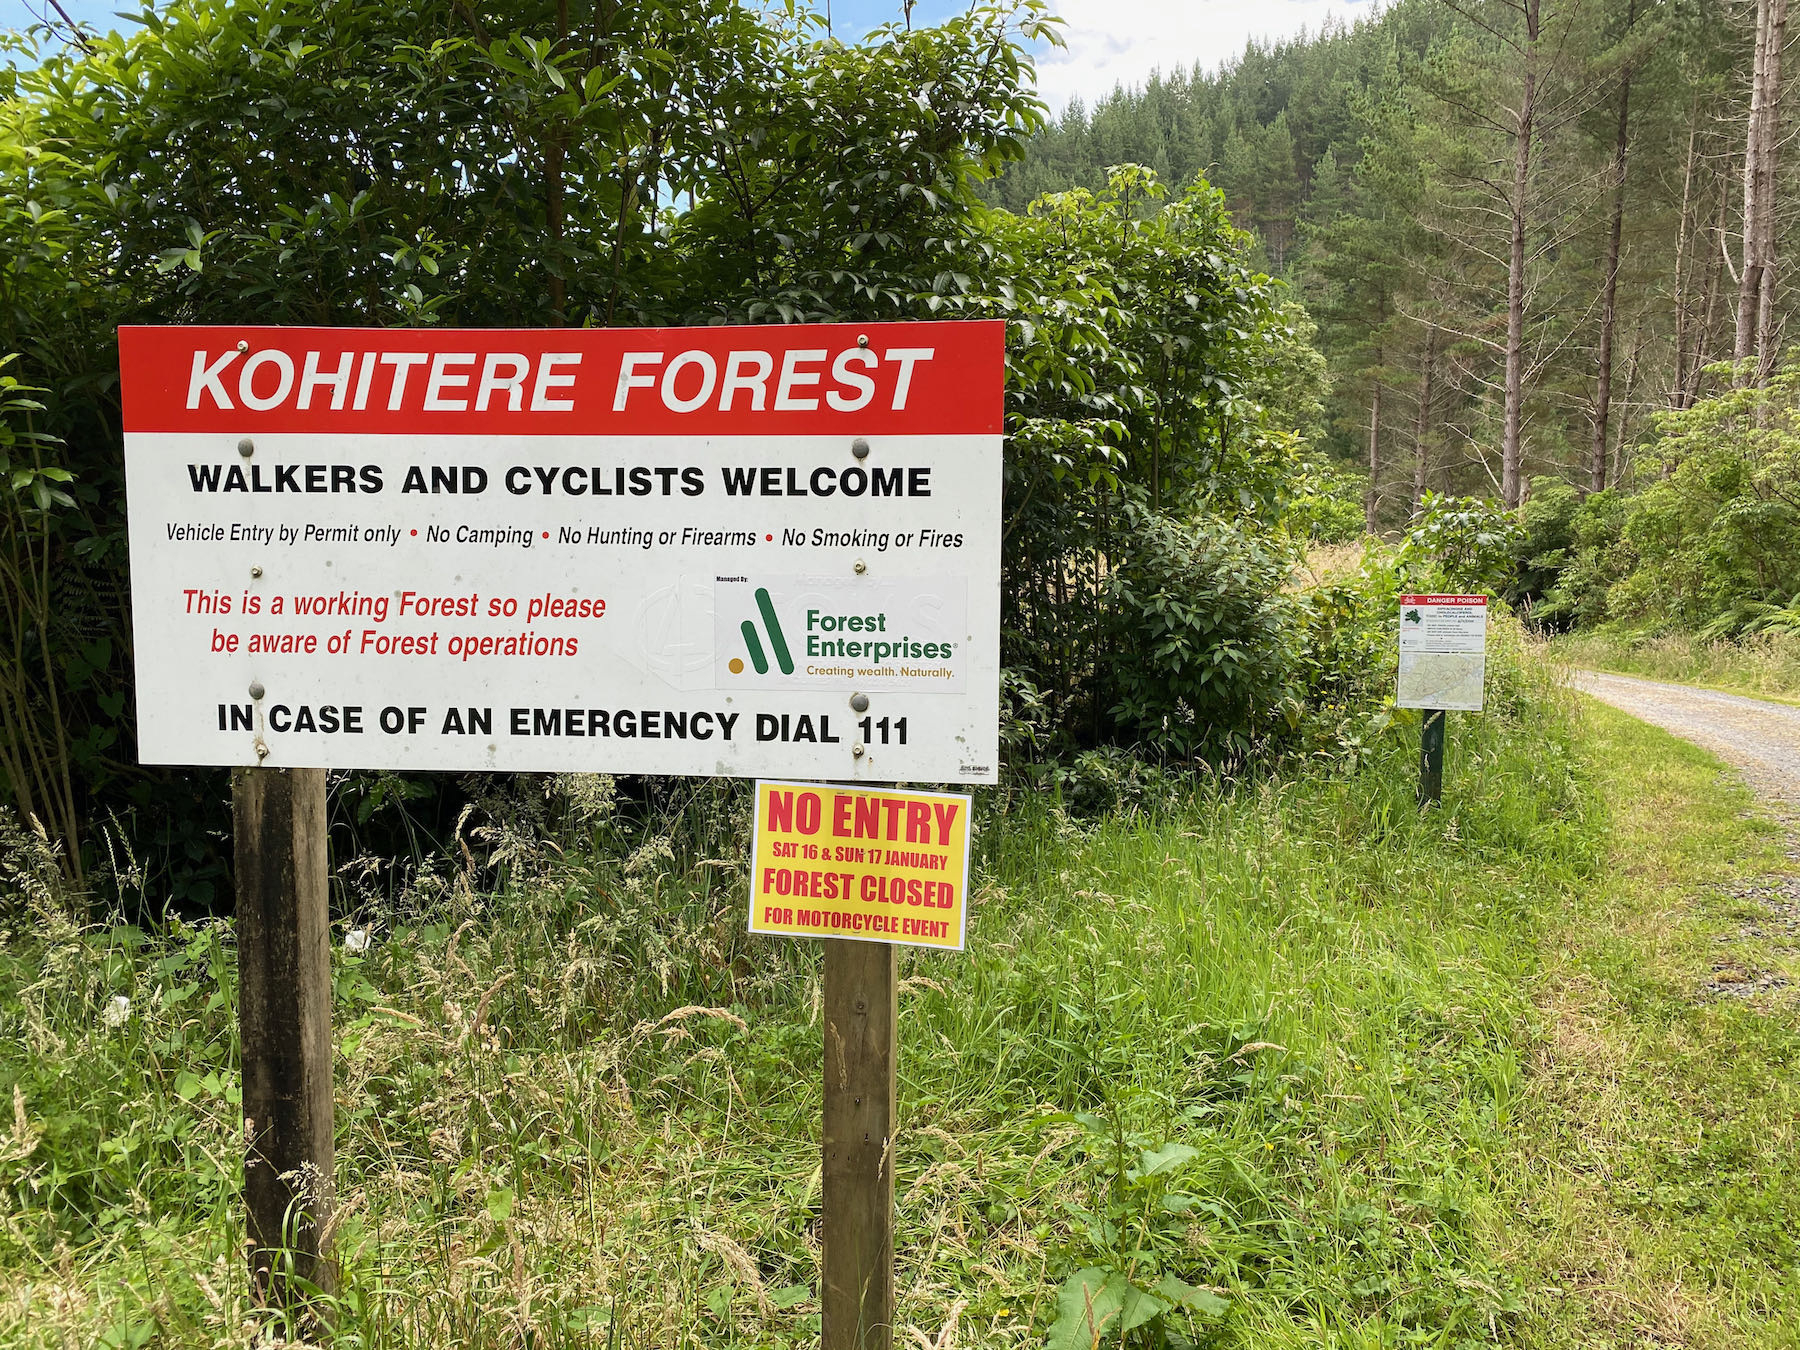 Kohitere Forest sign.